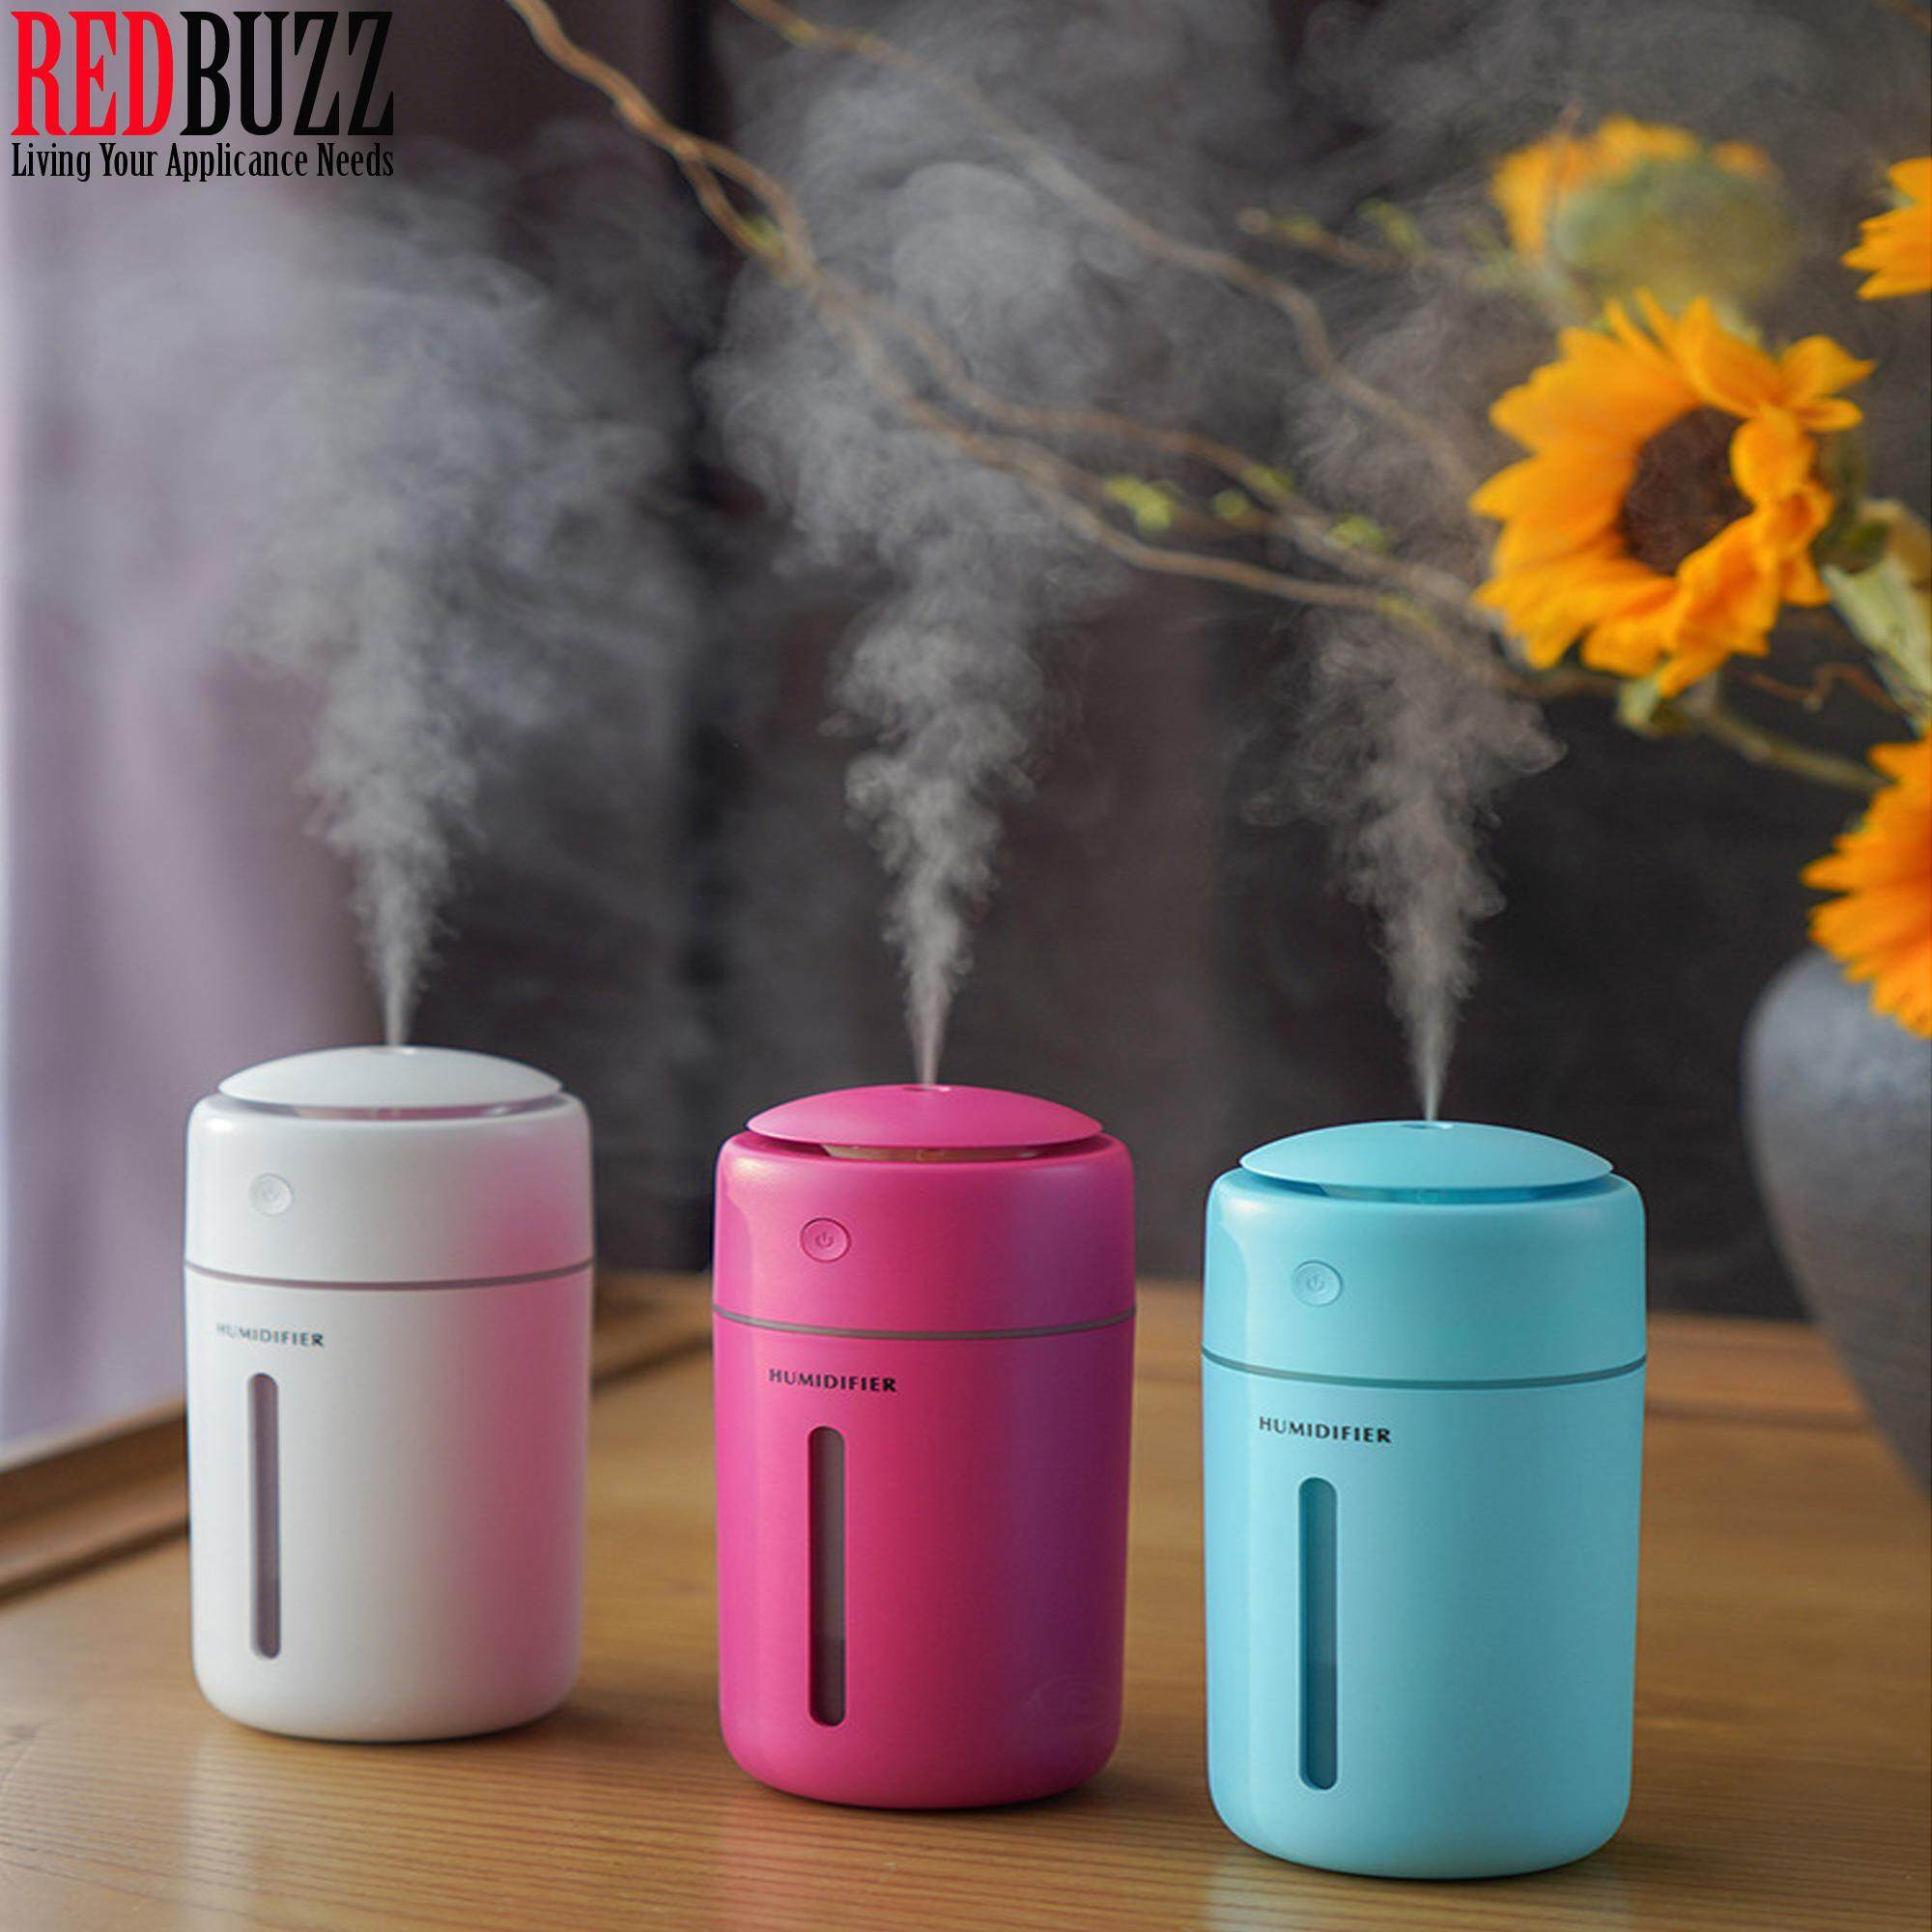 REDBUZZ 350ML Color Cup Ultrasonic Home Aroma Air Humidifier Diffuser Purifier Atomizer Aromatherapy Car Humidifier